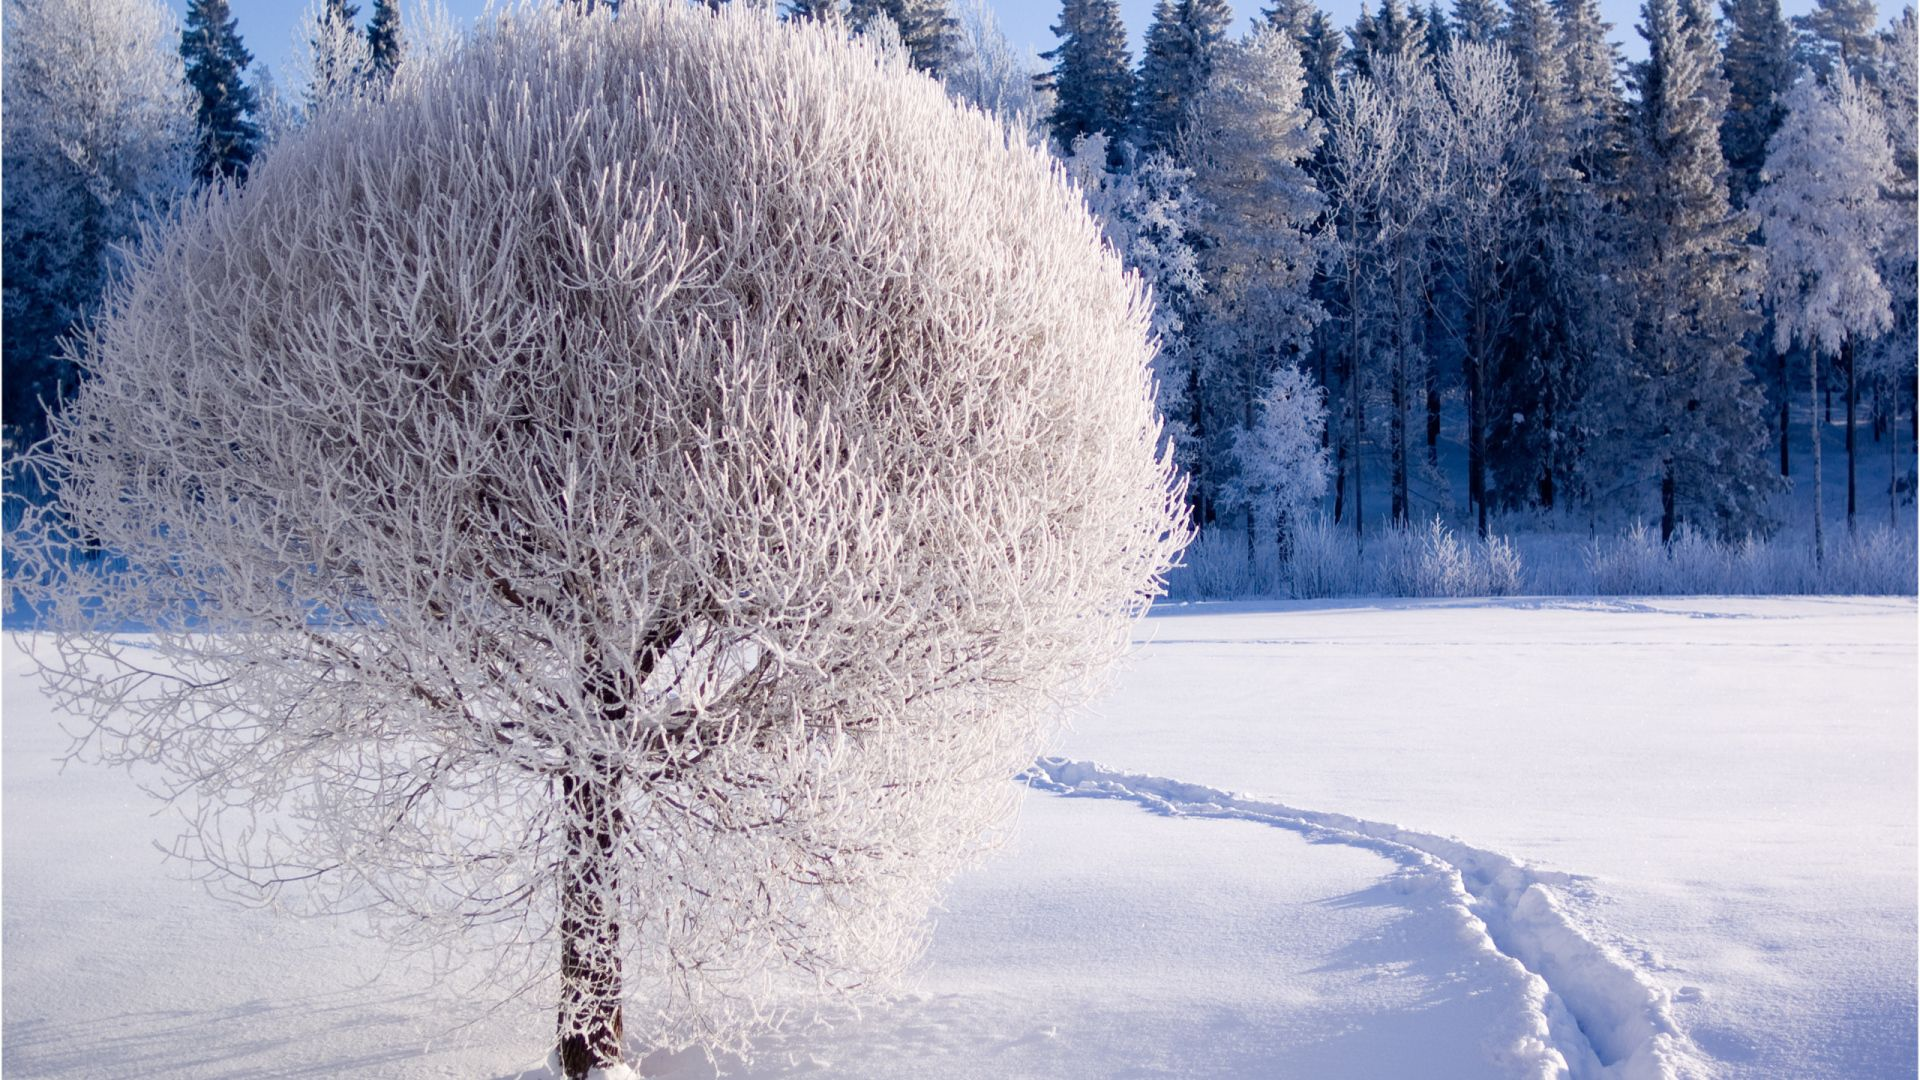 Winter Trees In The Snow